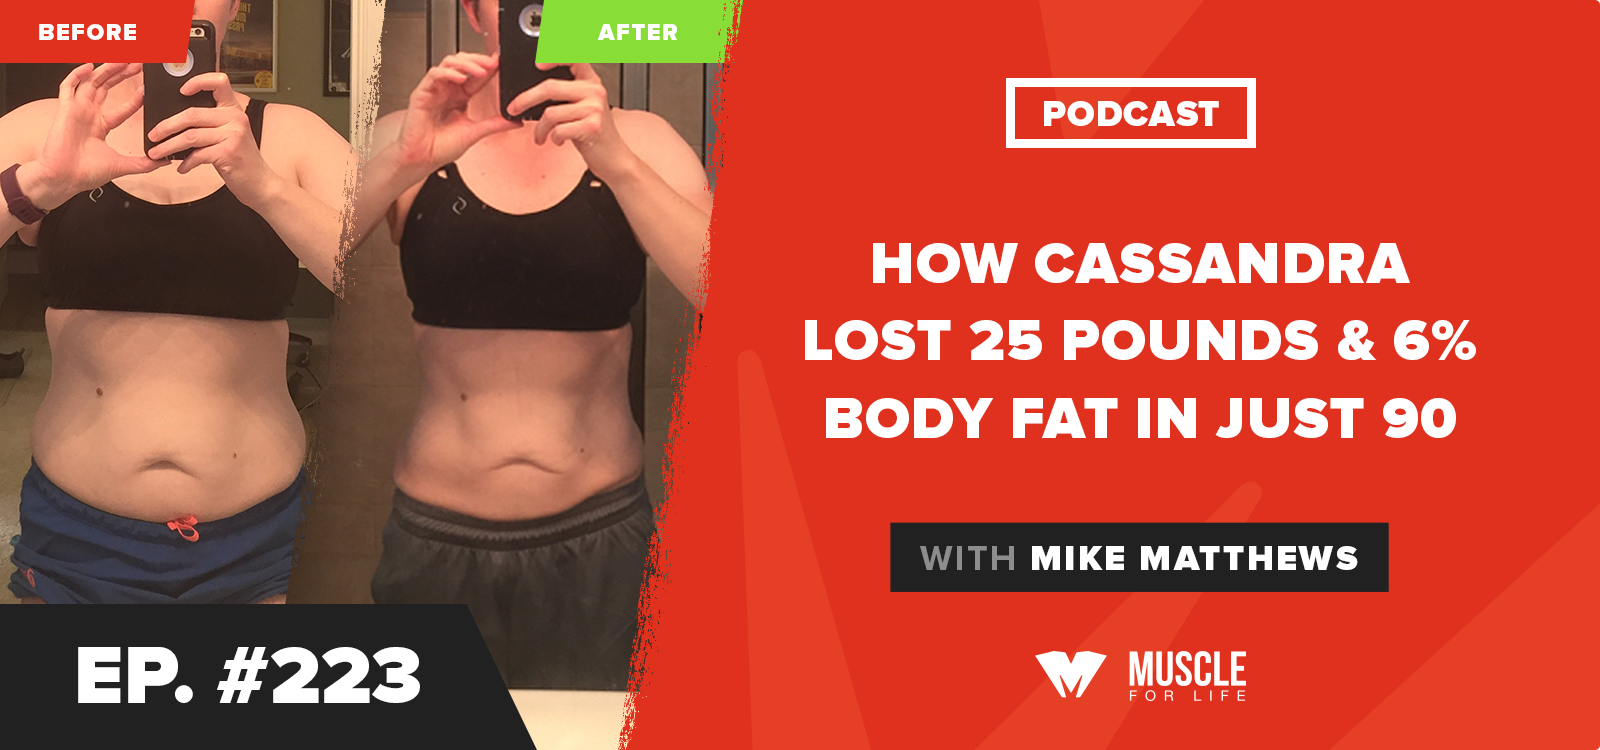 How Cassandra Lost 25 Pounds & 6% Body Fat In Just 90 Days